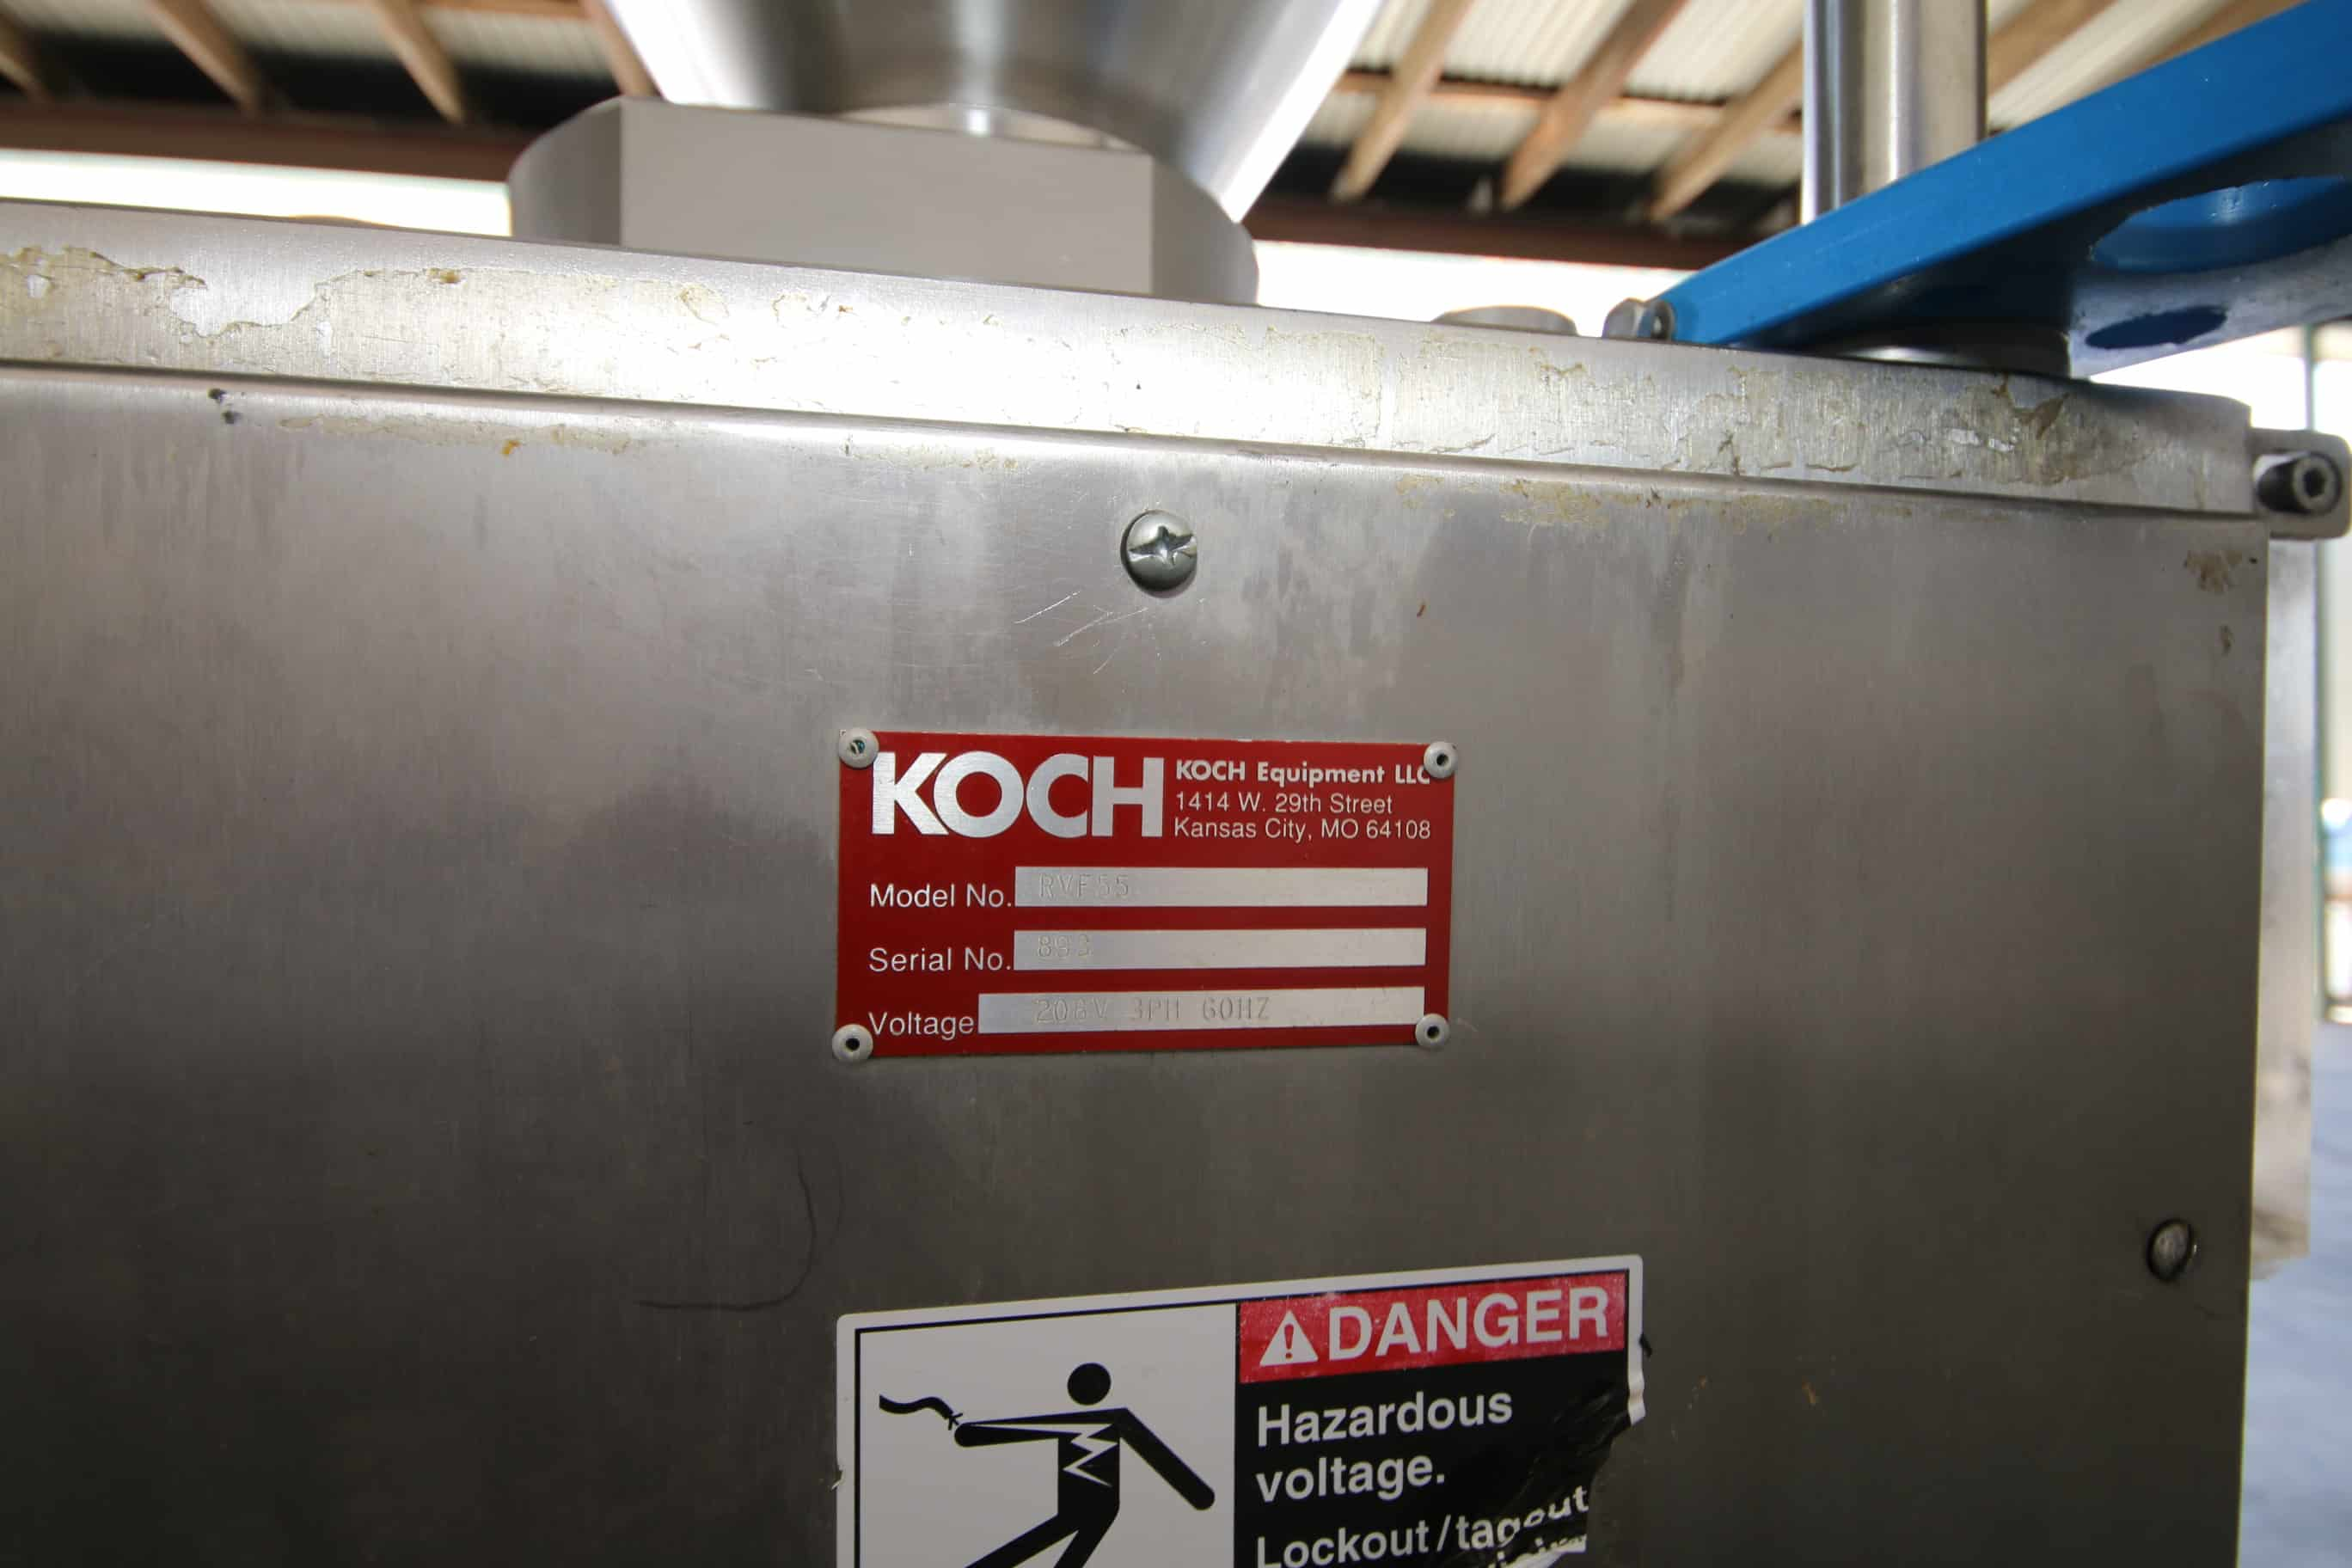 """Kock S/S Stuffer, M/N RVF55, S/N 893, 208 Volts 3 Phase, with Spare Tooling and 37-1/2"""" Dia. S/S Funnel"""